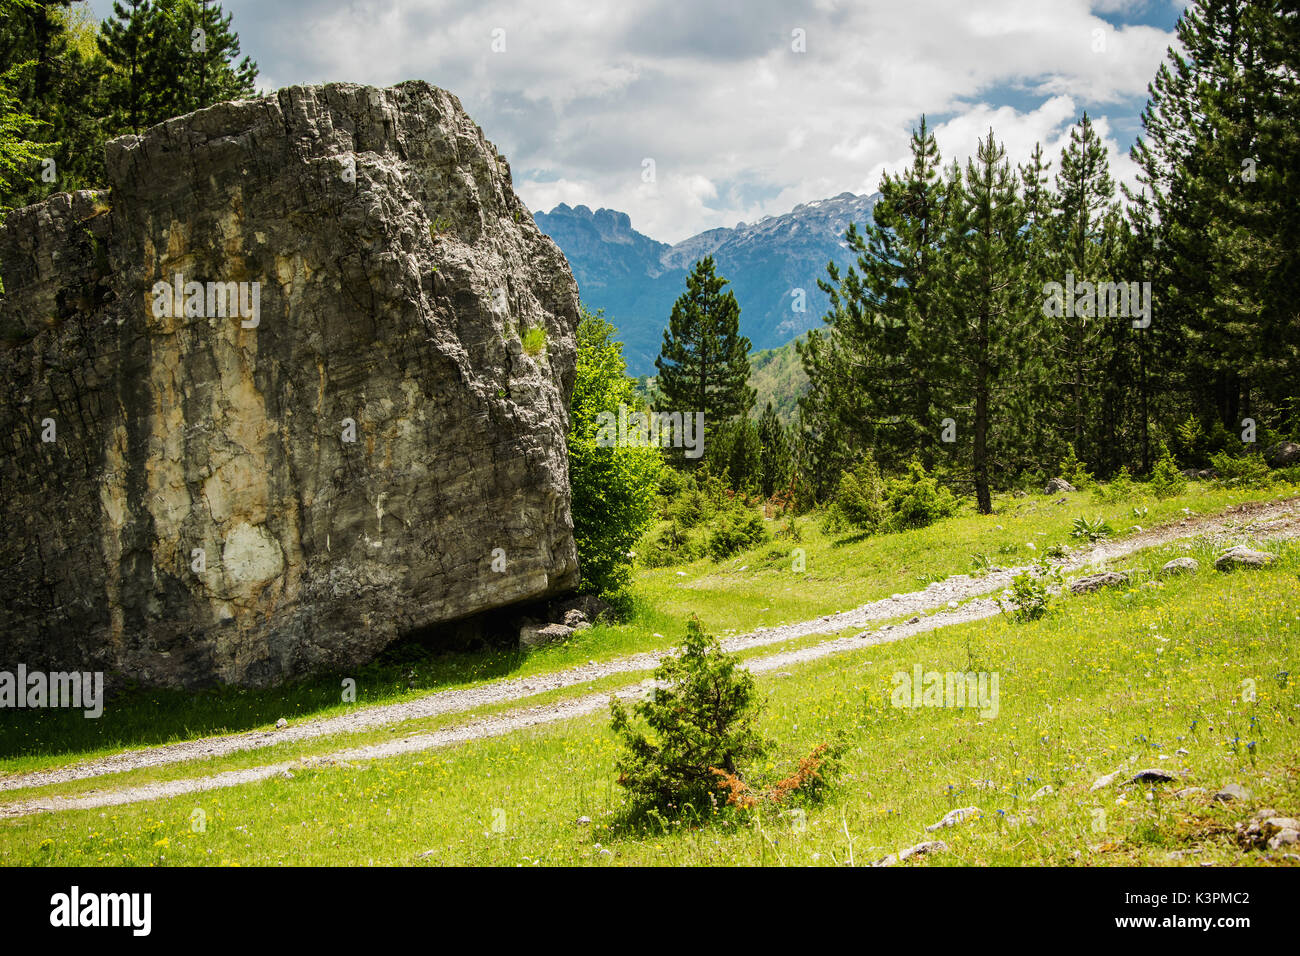 Scenic nature view - a  huge rock next to the road. Concept of moving a huge stone from the road - Stock Image